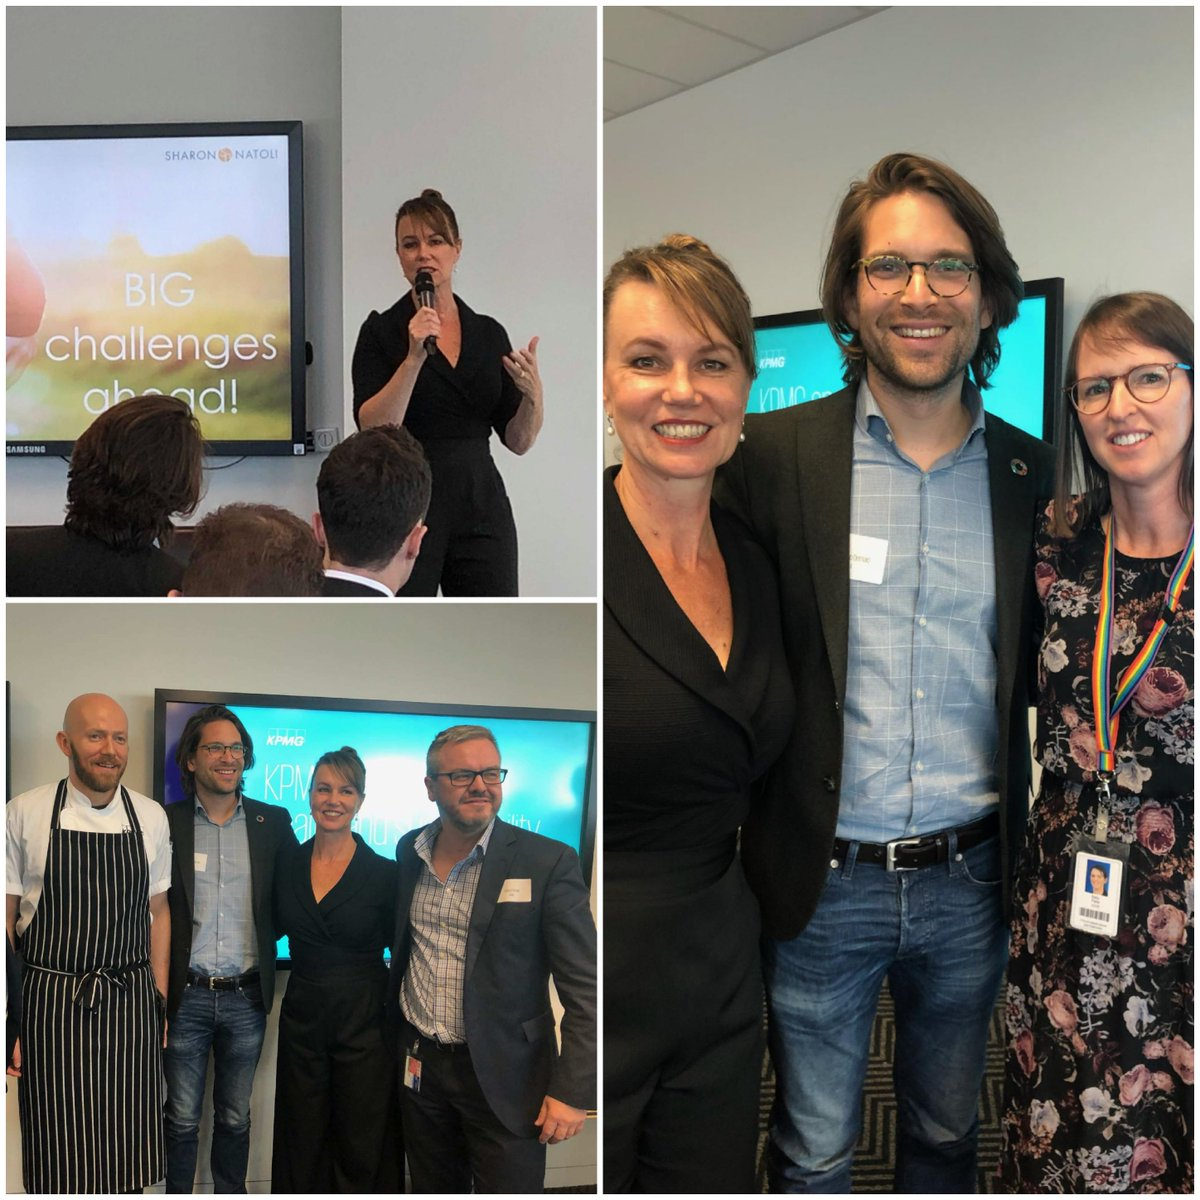 Grateful for the opportunity to present alongside @SandroDemaio to a group of business leaders today @KPMG  on the challenges that lie ahead for the health of people & the planet & the role food businesses can play in driving change toward a better future. #KPMGEAT #FutureofFood